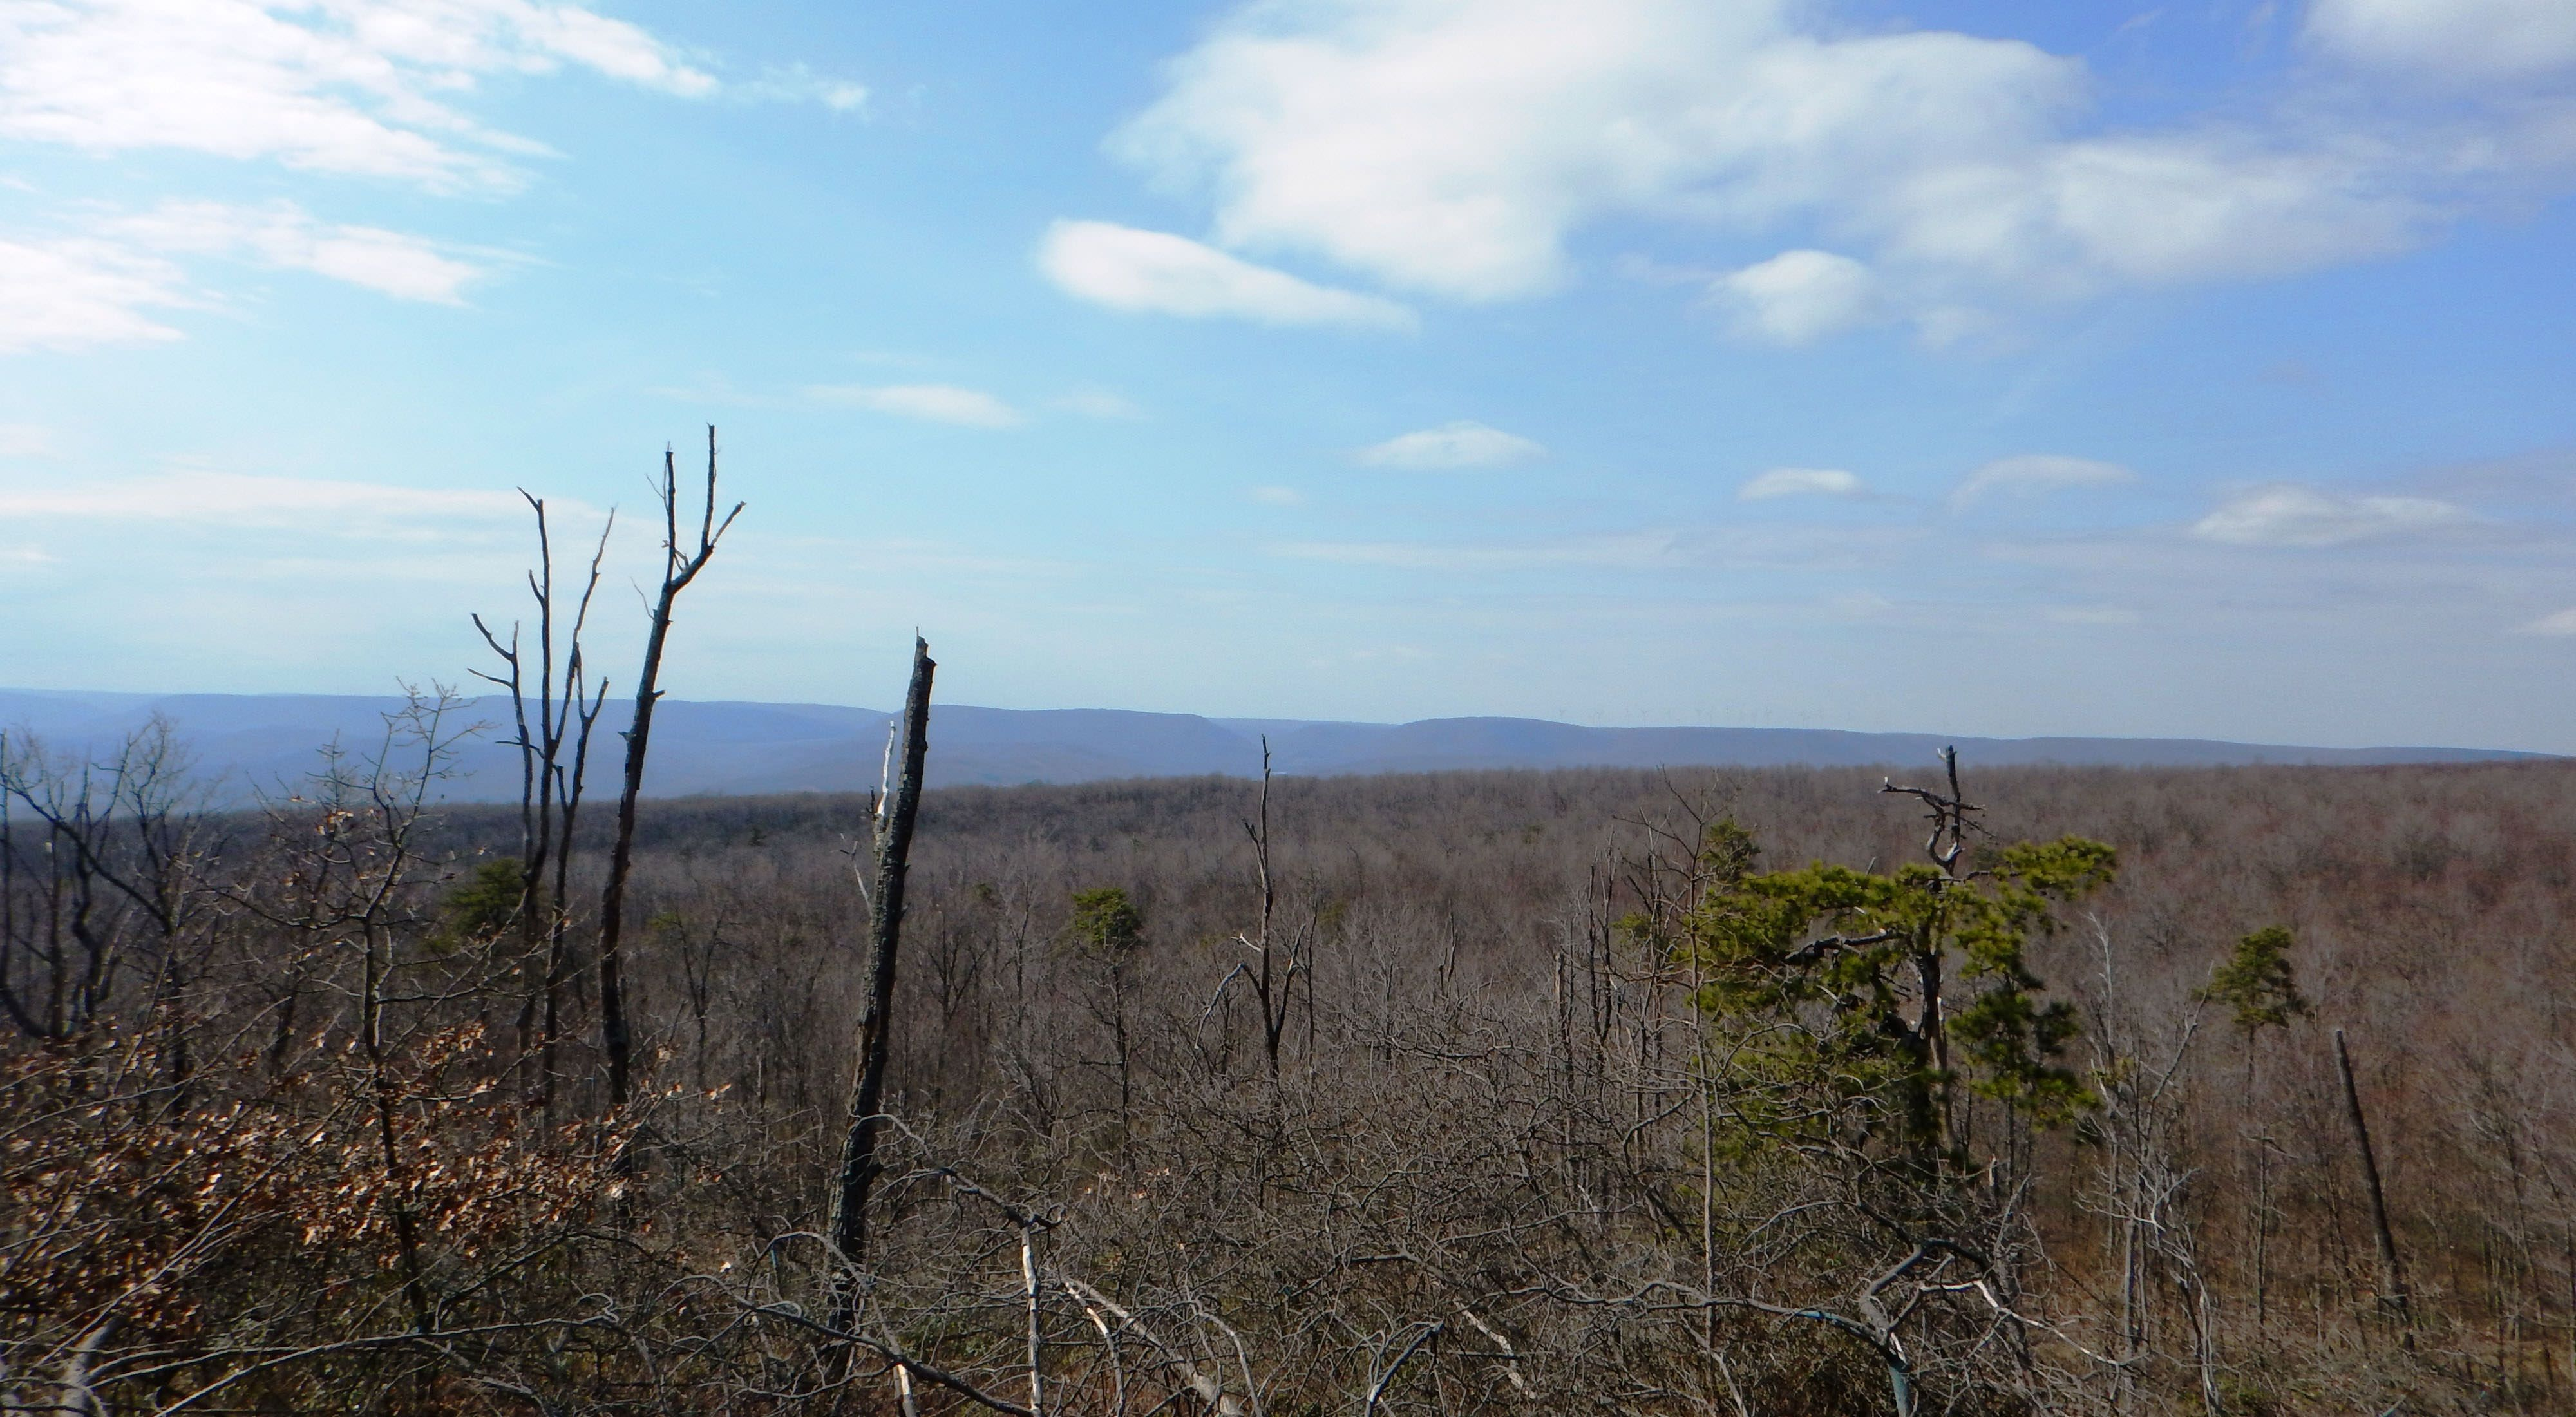 The view from The Nature Conservancy's Brush Mountain Preserve in Pennsylvania.